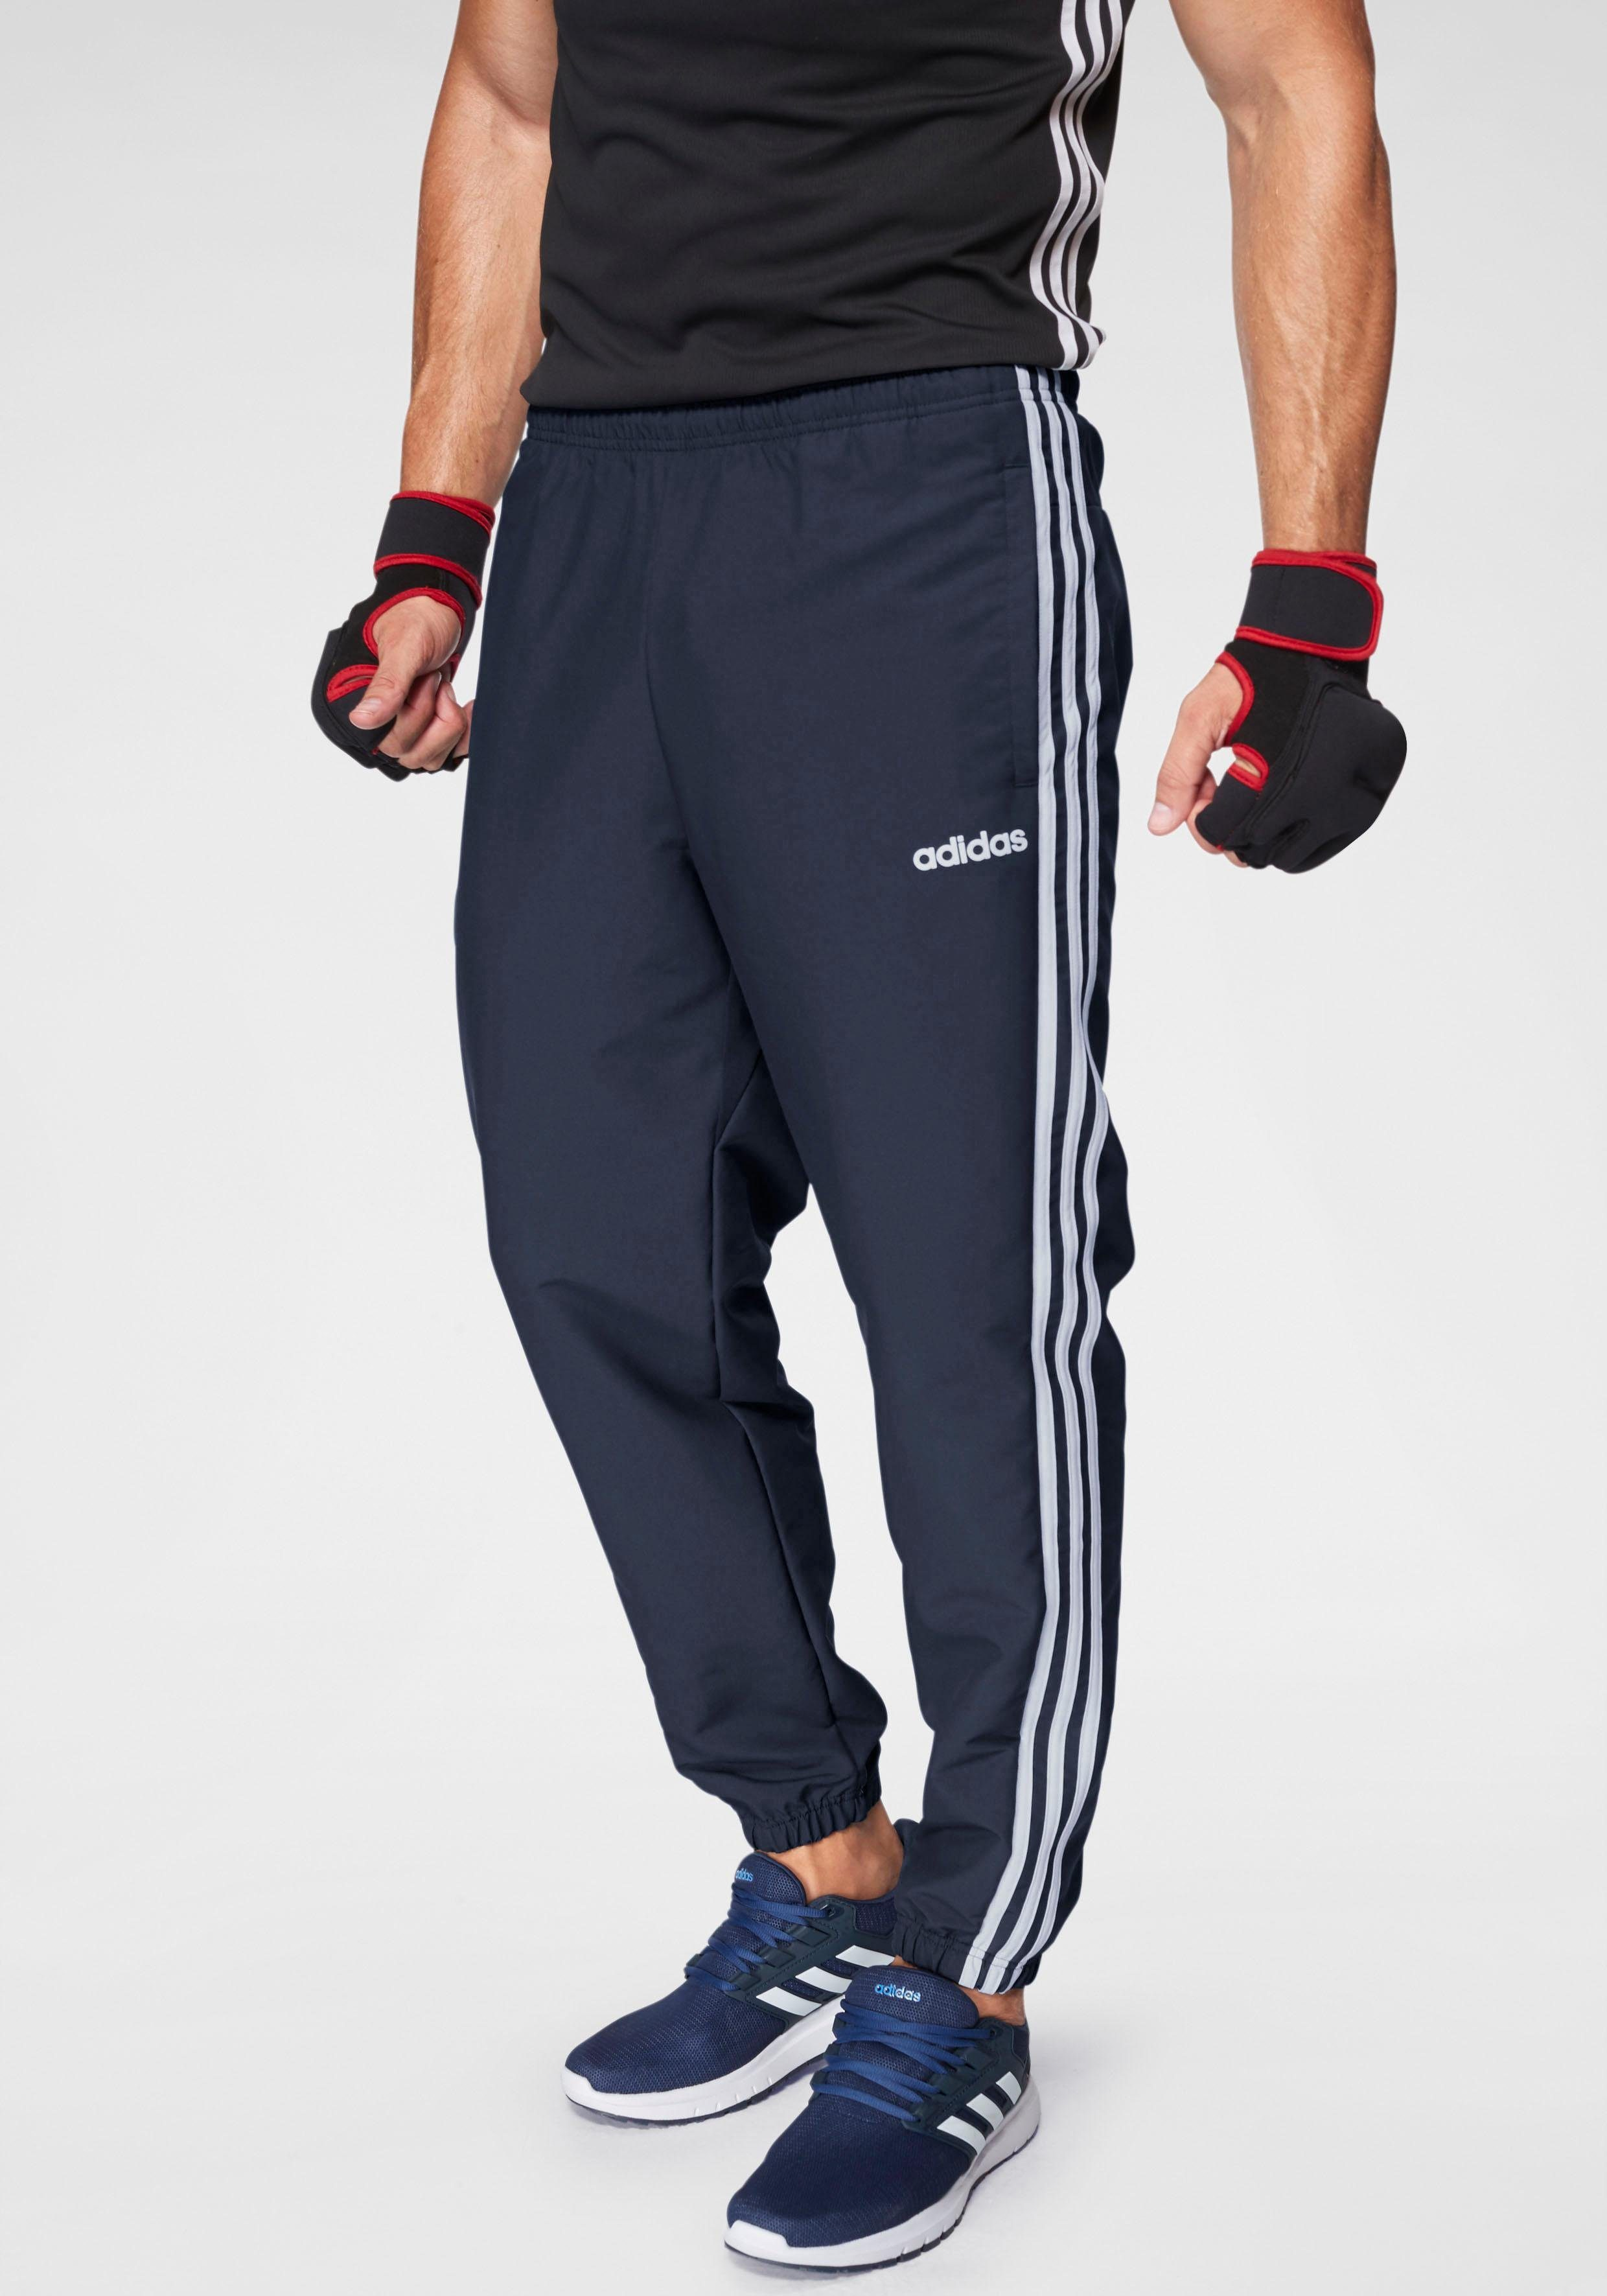 adidas joggingbroek »E 3 STRIPES WIND PANT«